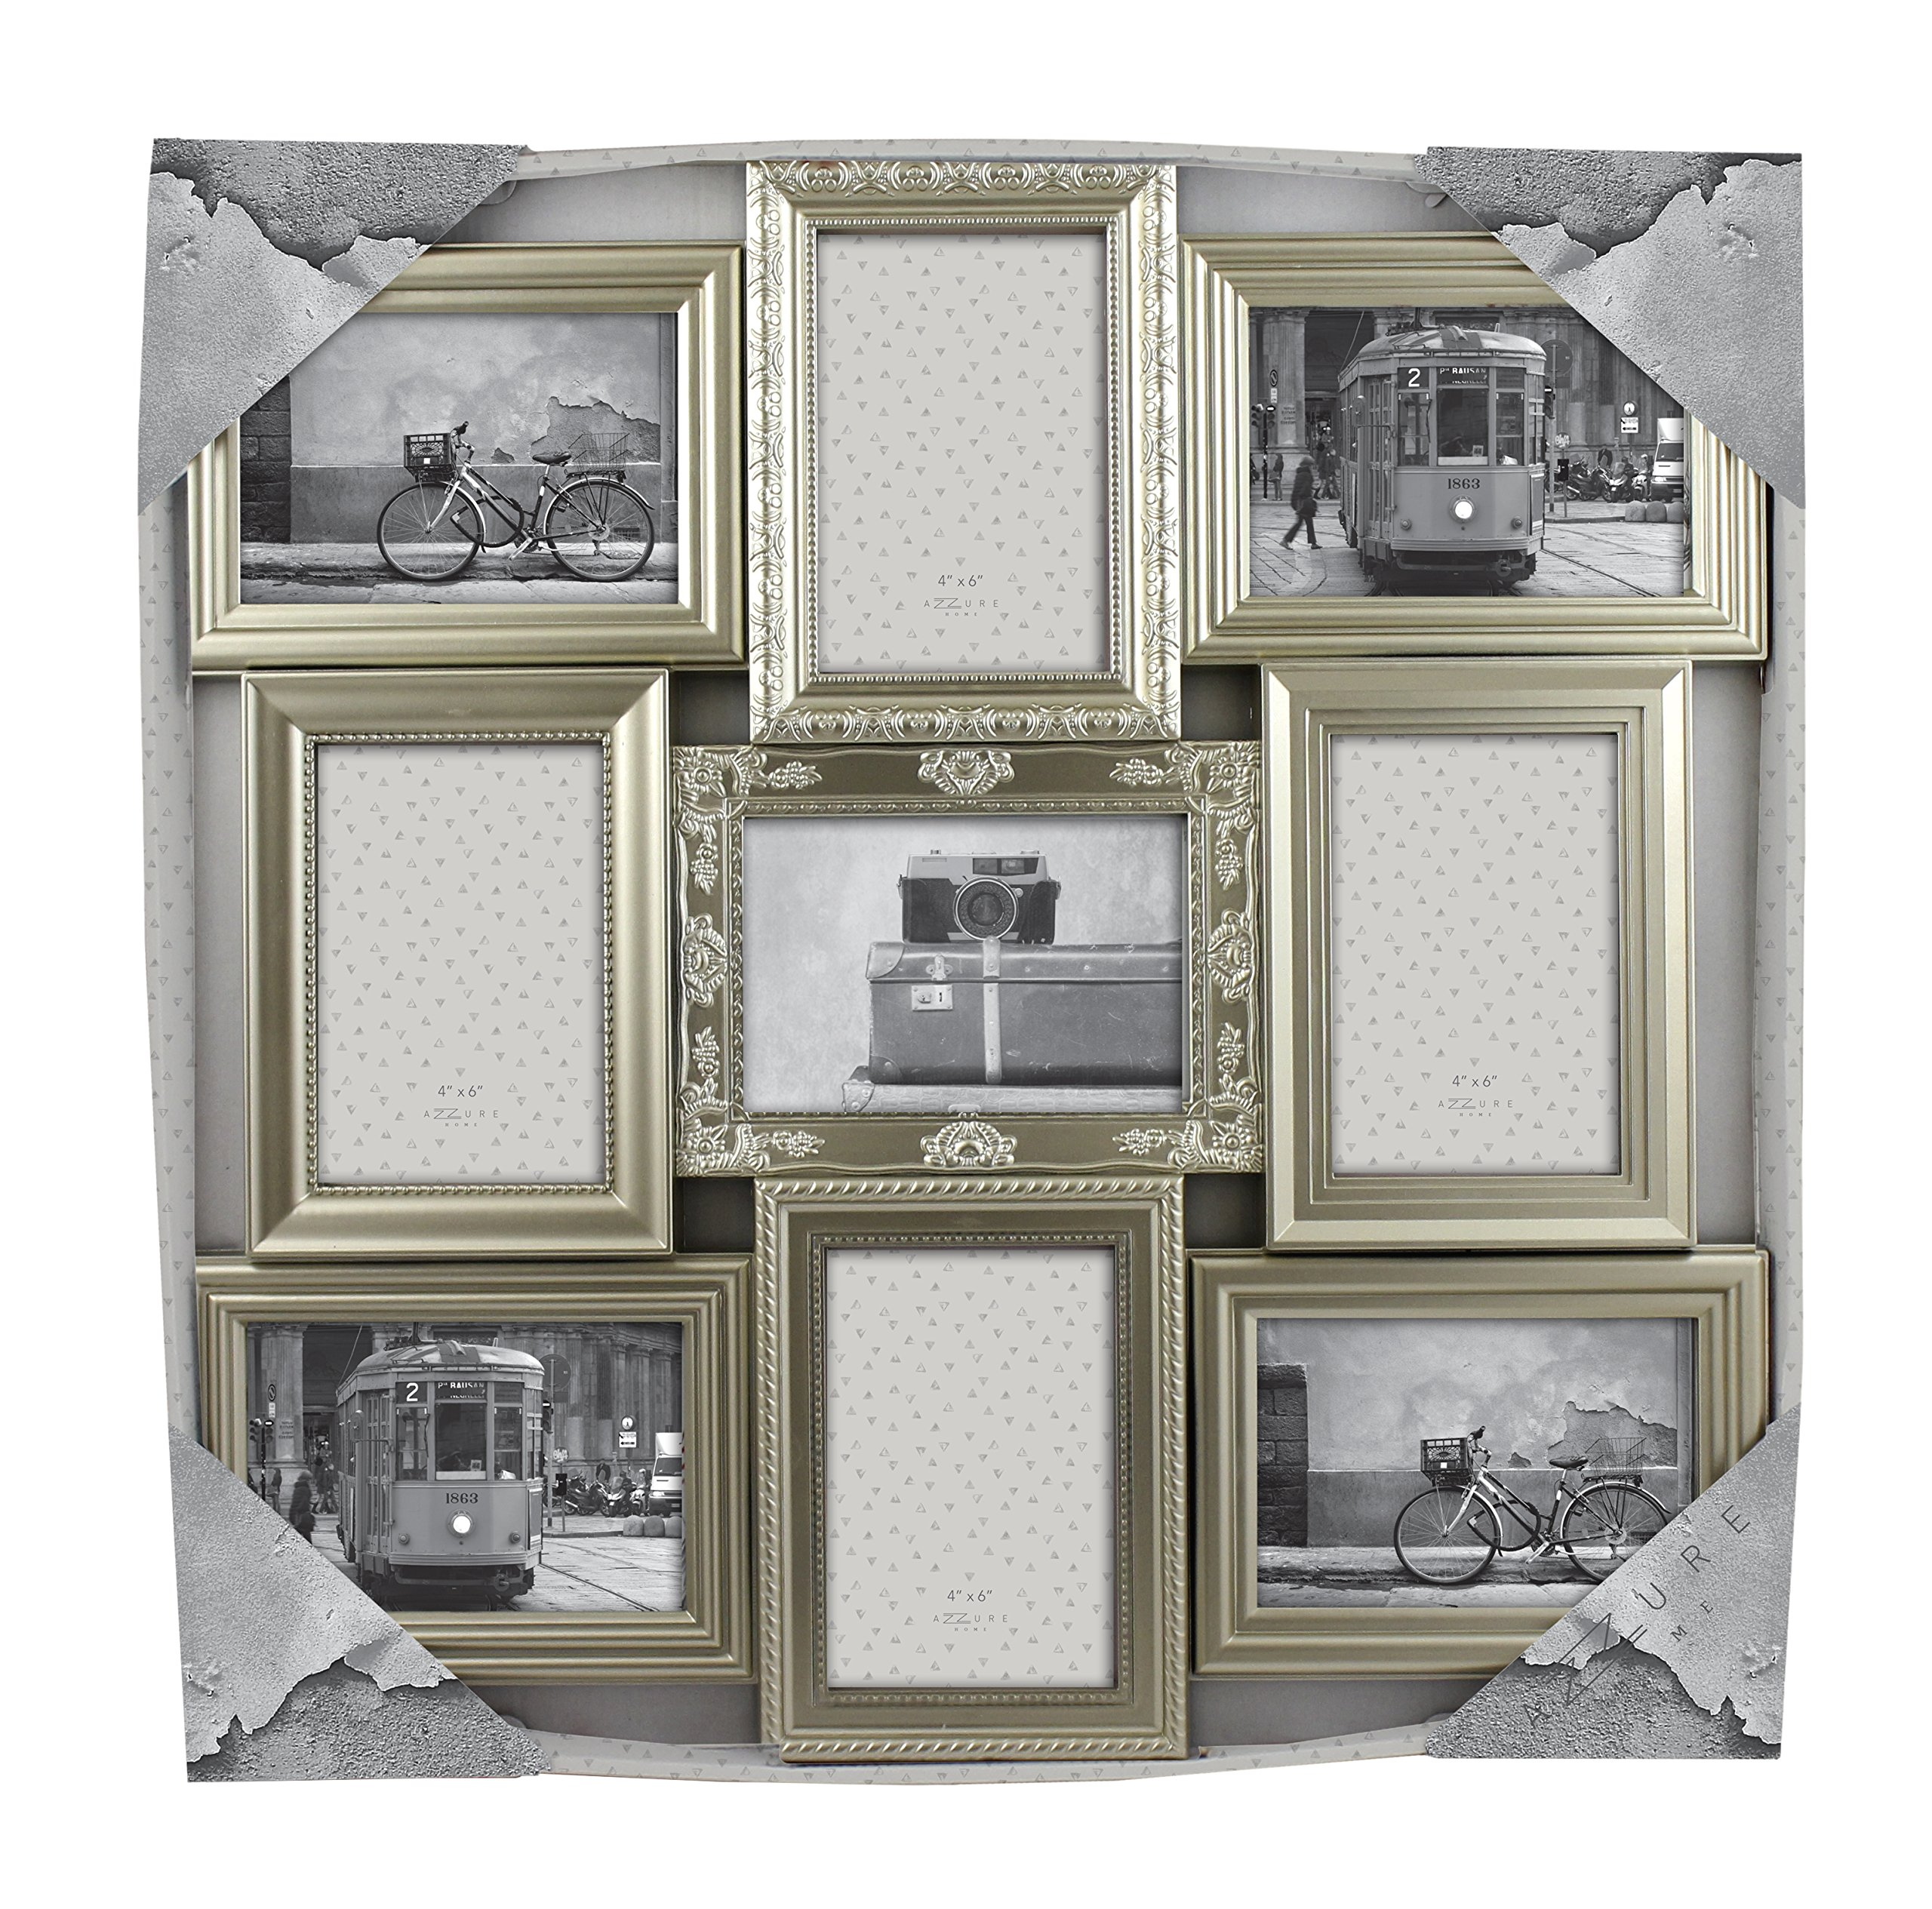 "Azzure Home Victorian"" 9 Openings Decorative Wall Hanging Collage Picture Frame - Made to Display Four 6x4 and Five 4x6 Photos, Champagne"